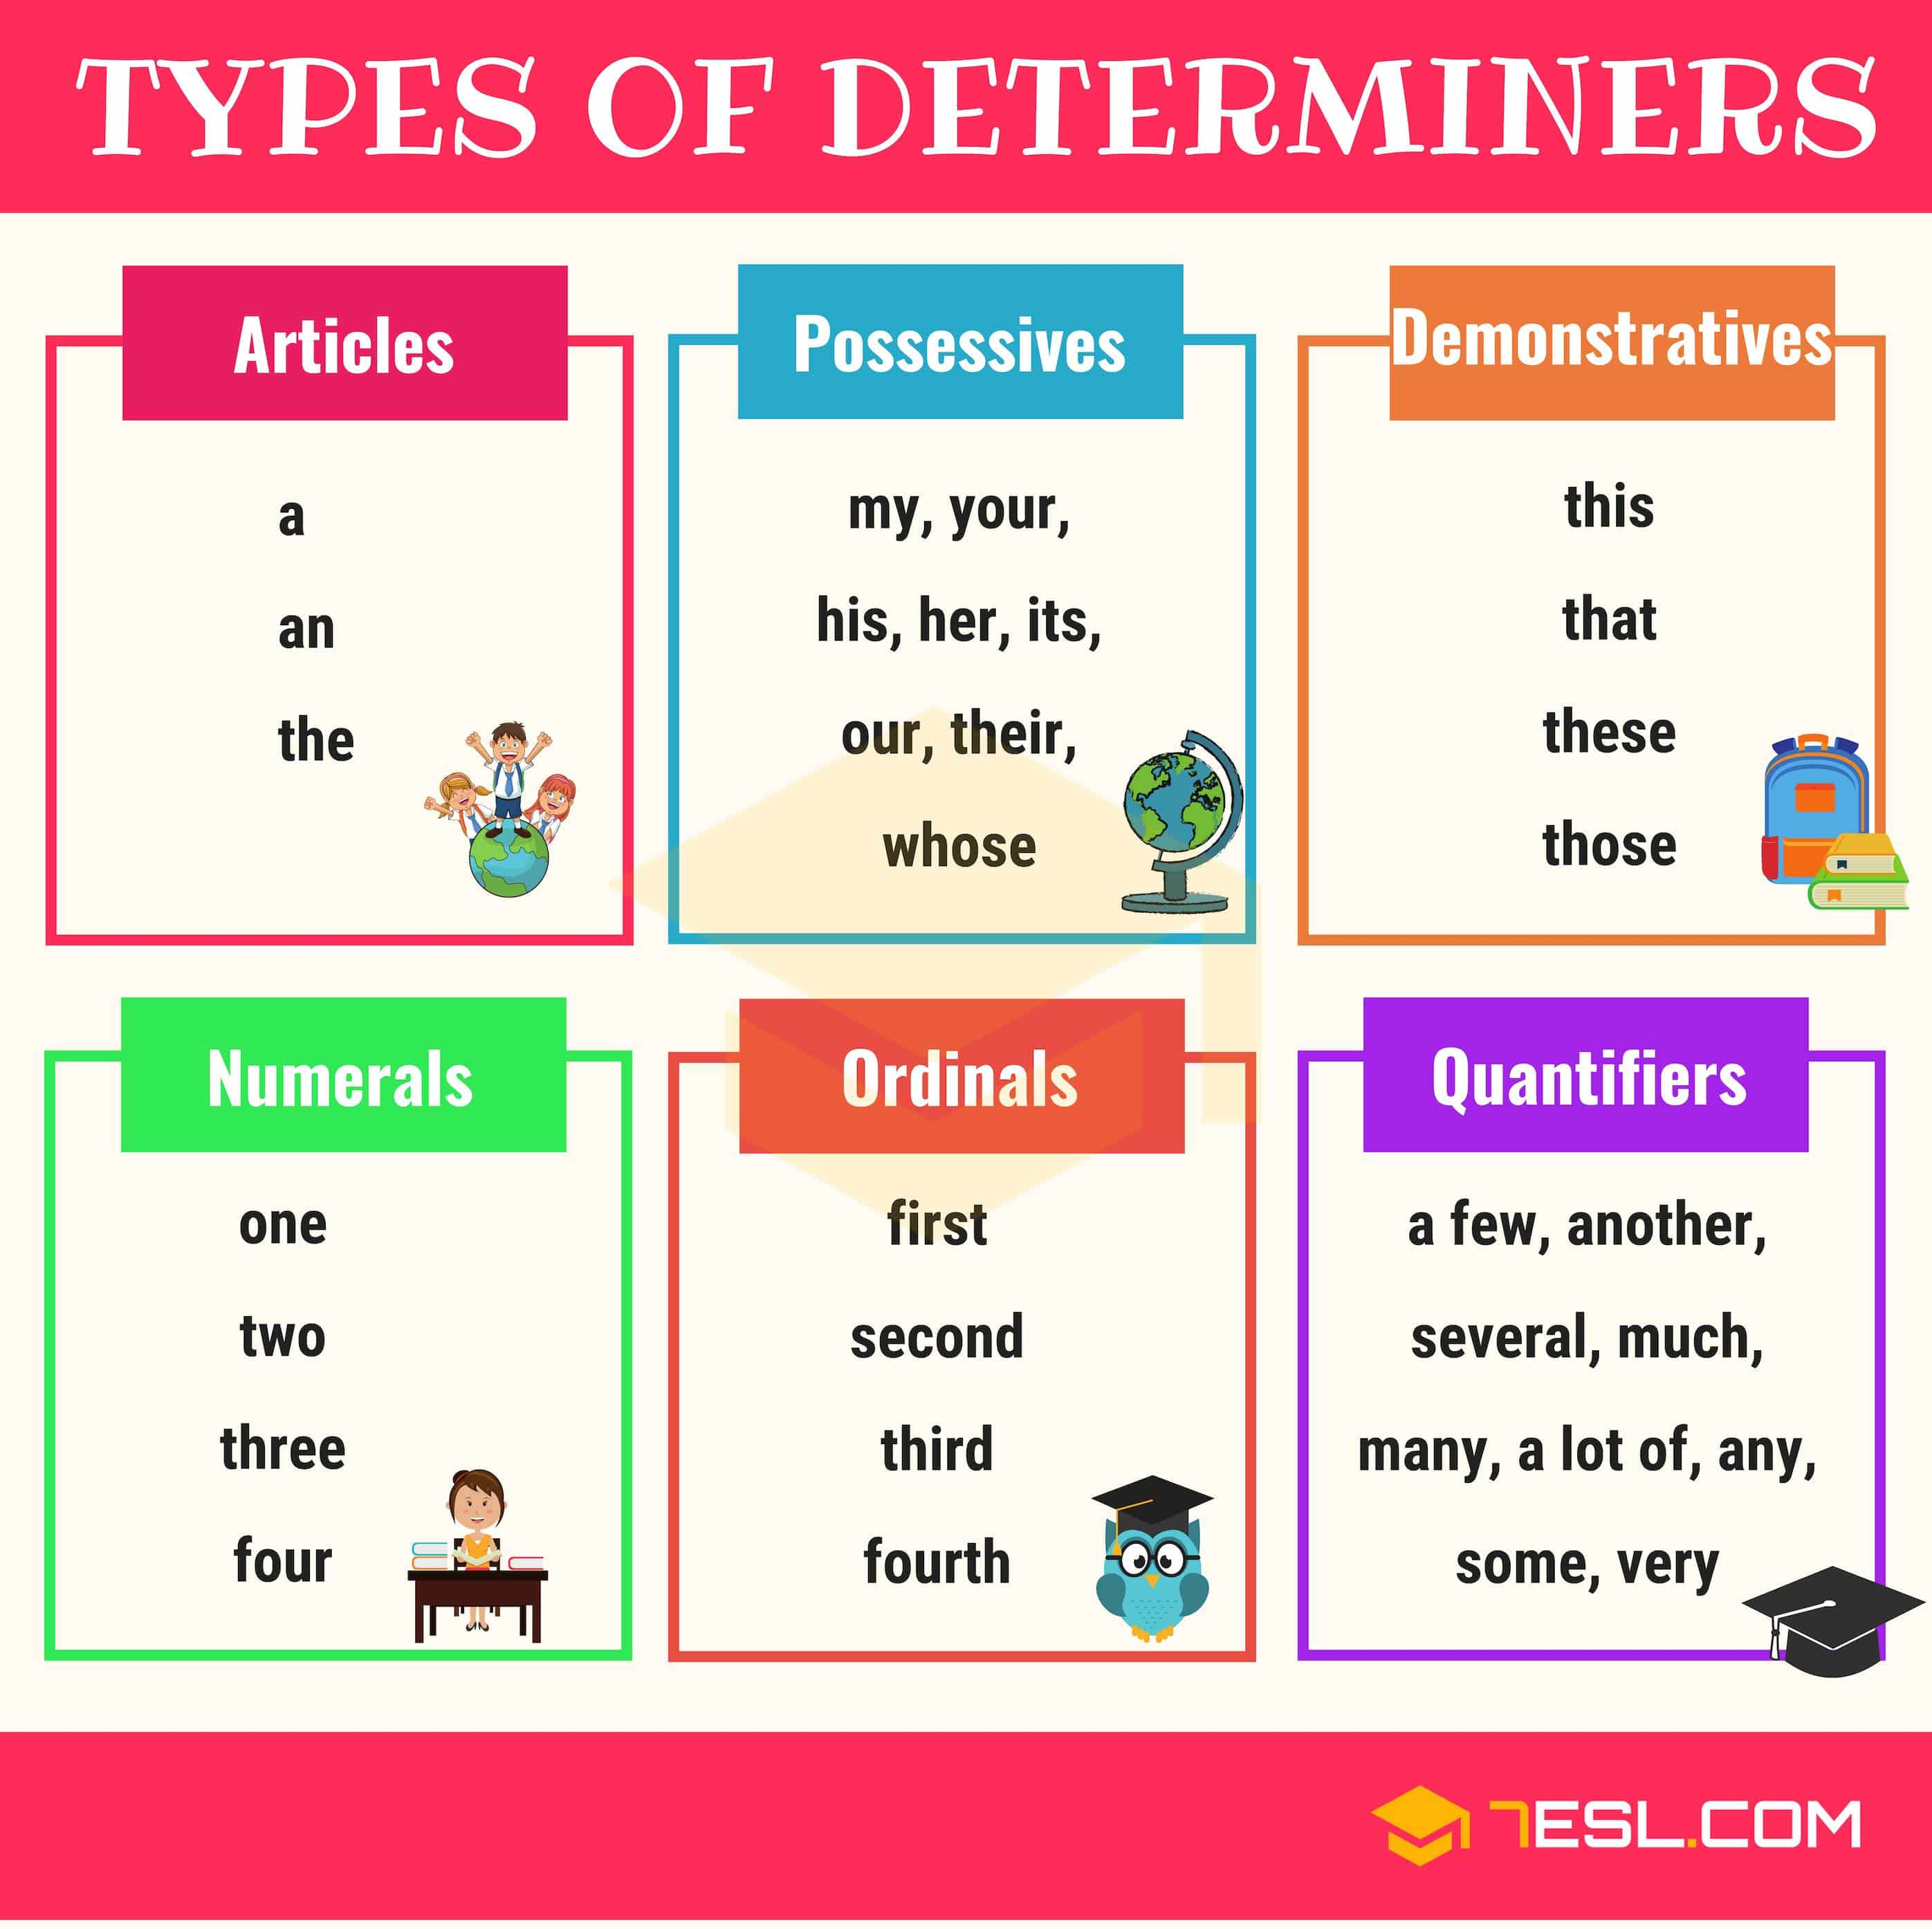 Determiners - Types of Determiners